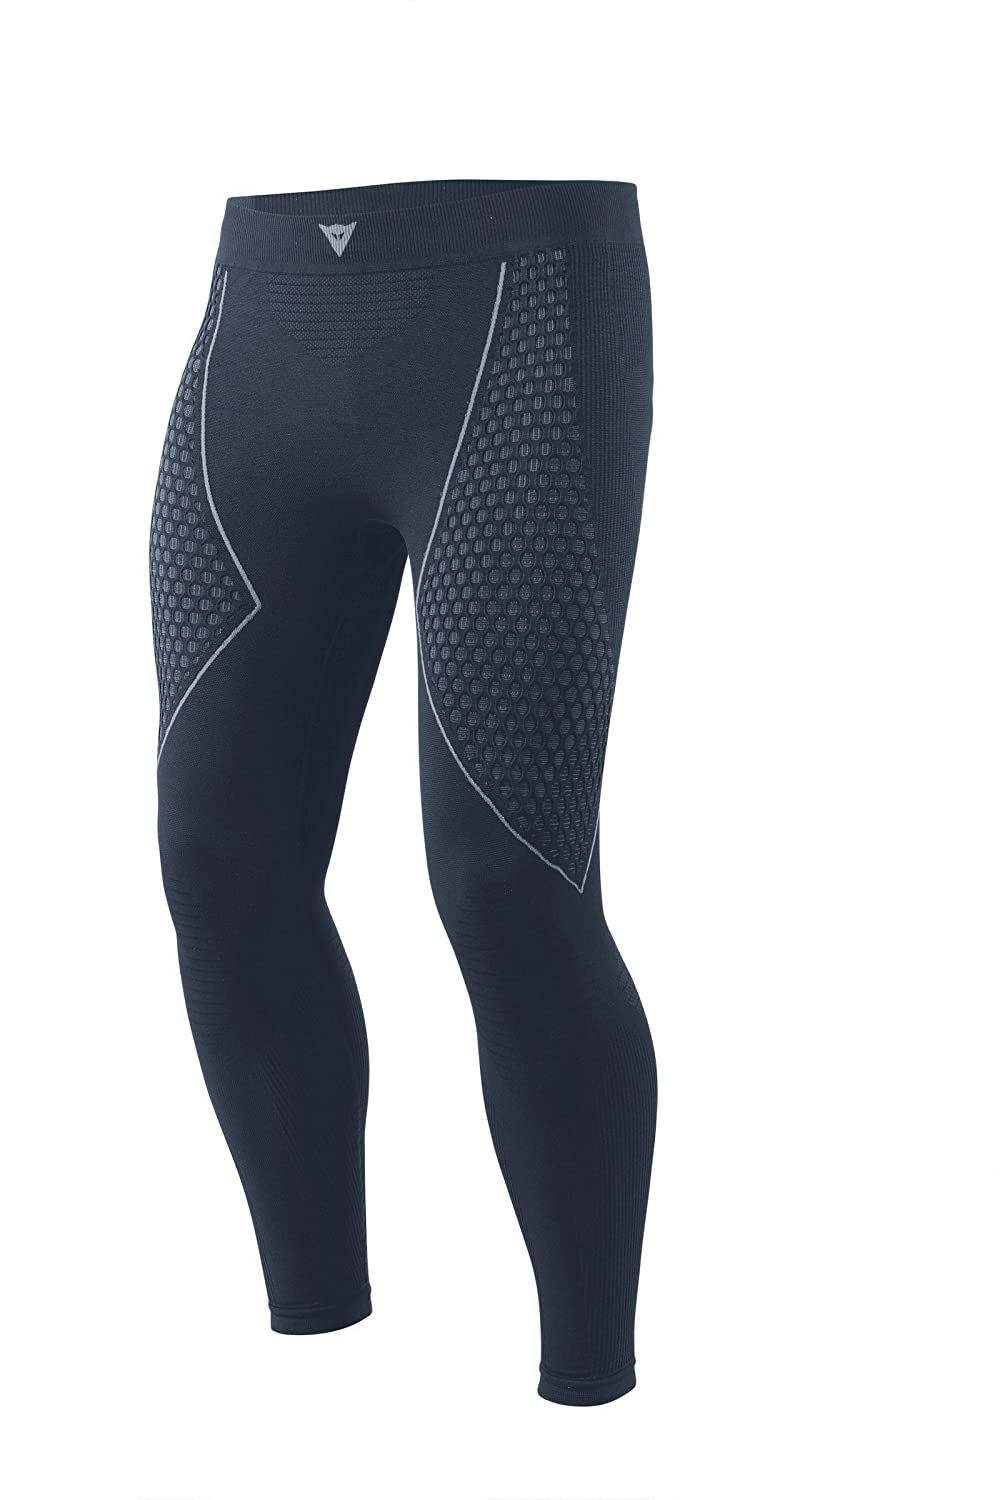 Dainese-D-CORE THERMO Pantalon LL, Noir/Anthracite, Taille M 1915944606L